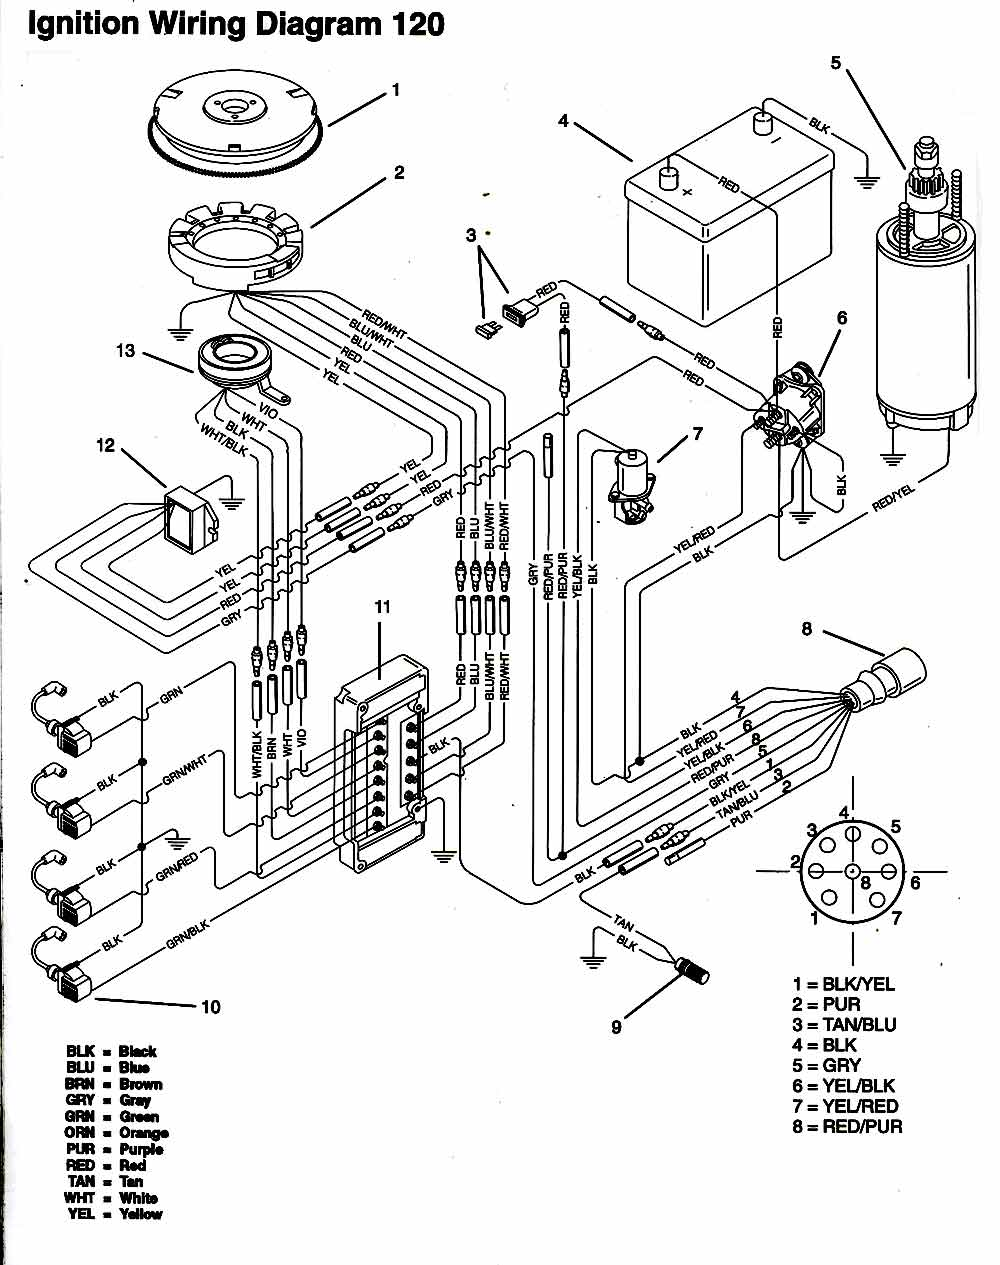 1989 mercury 115 hp wiring diagram